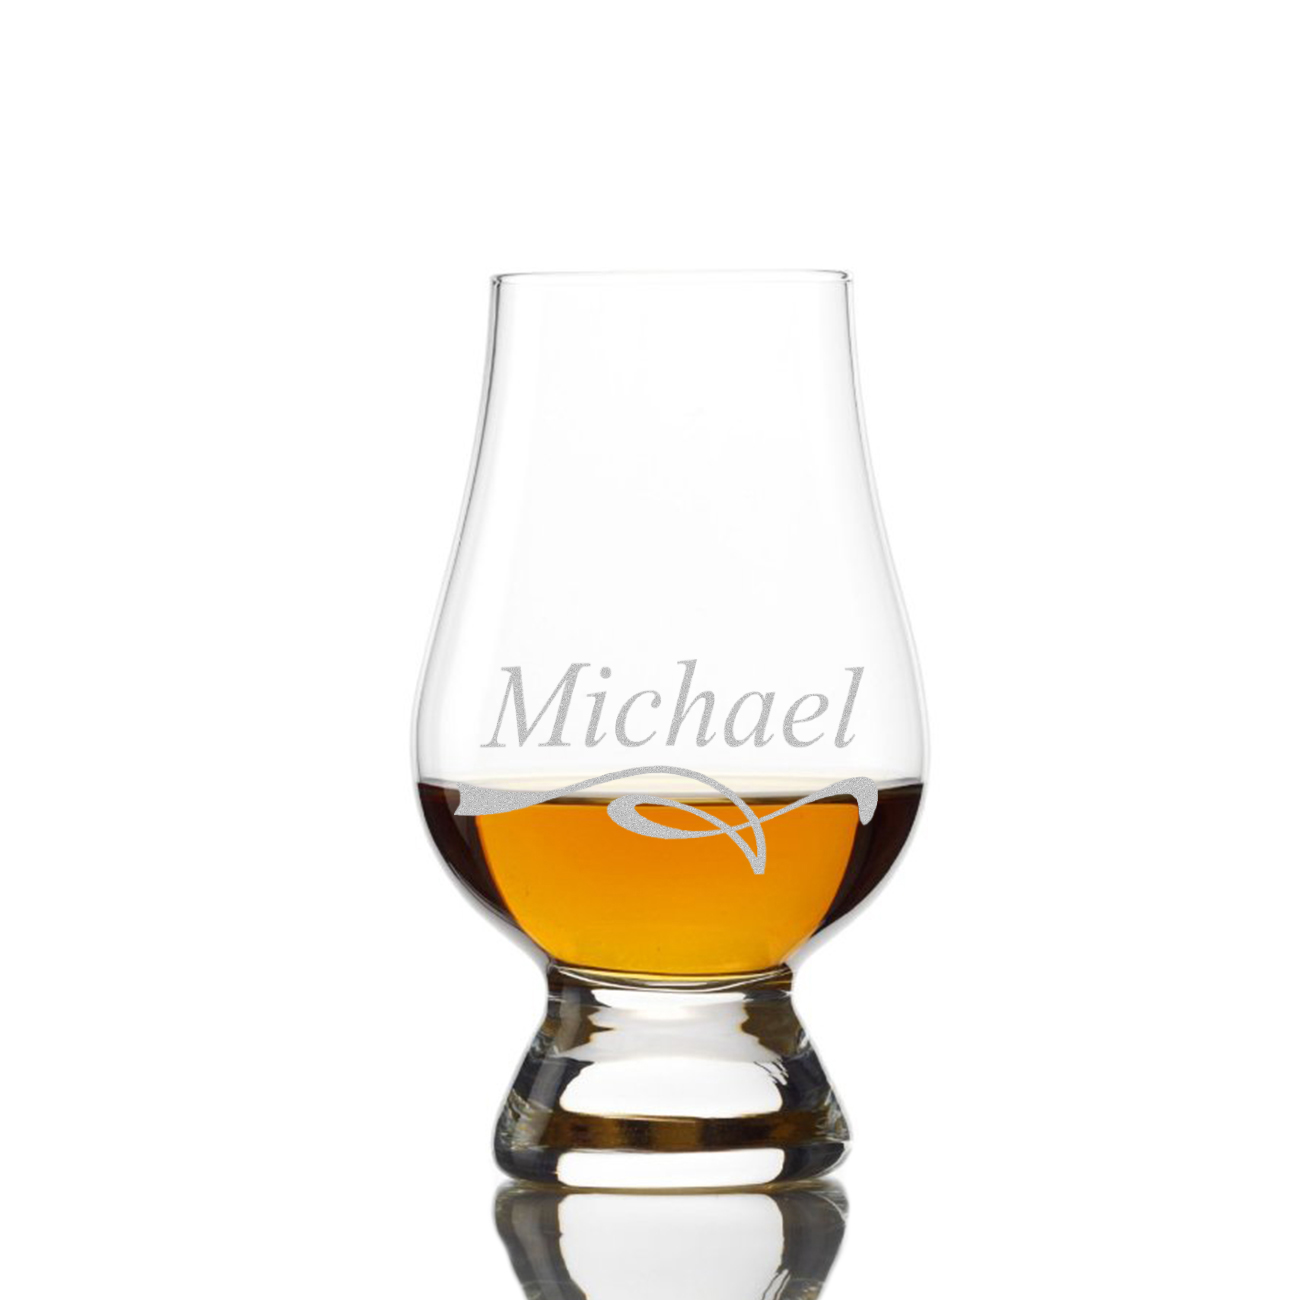 whisky nosing glencairn glass engraved ebay. Black Bedroom Furniture Sets. Home Design Ideas